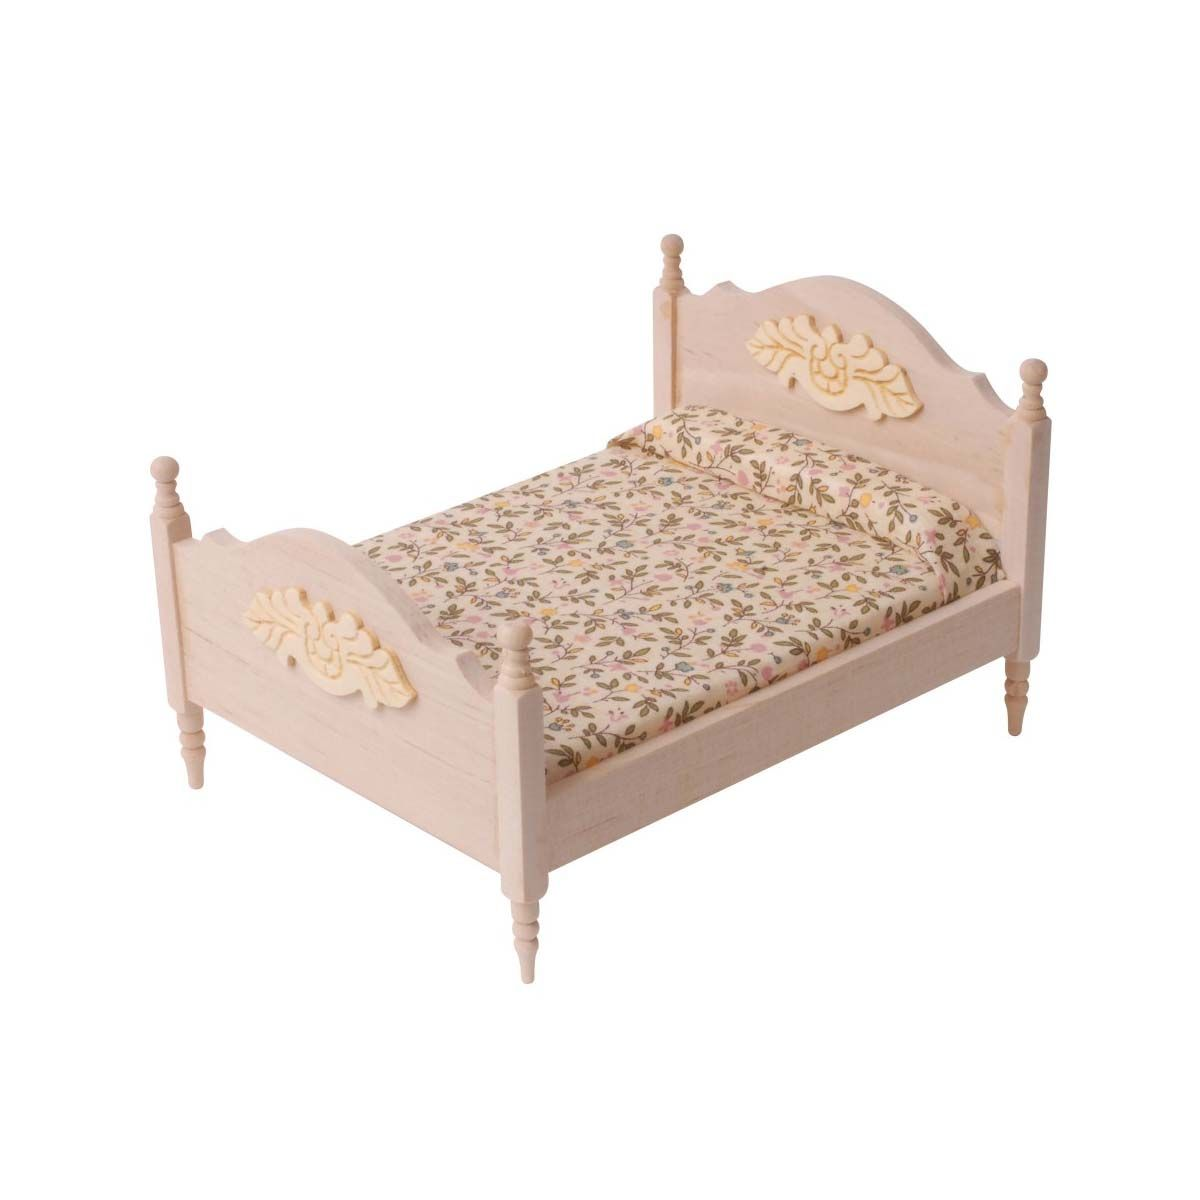 Barewood Dolls House Furniture Bare Essentials 1 12 Bef068 Double Bed